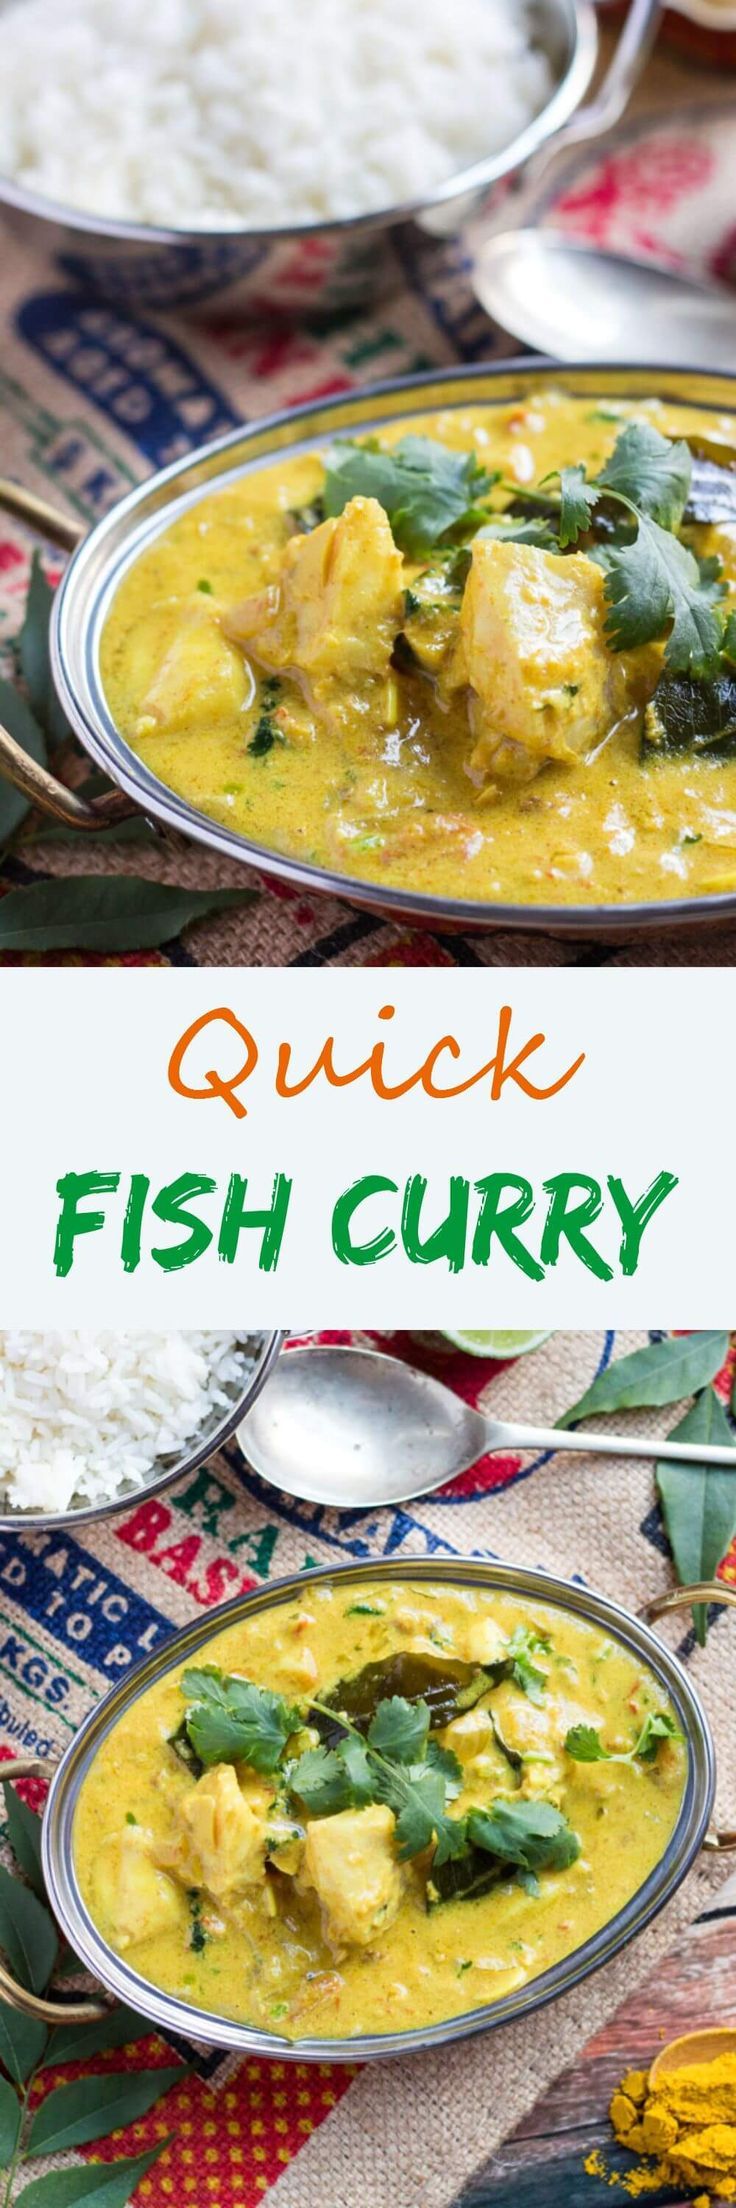 Whip up this quick fish curry in 30 minutes for an easy mid-week meal. Bold curry flavours & creamy coconut milk will sway the most skeptical fish eaters.